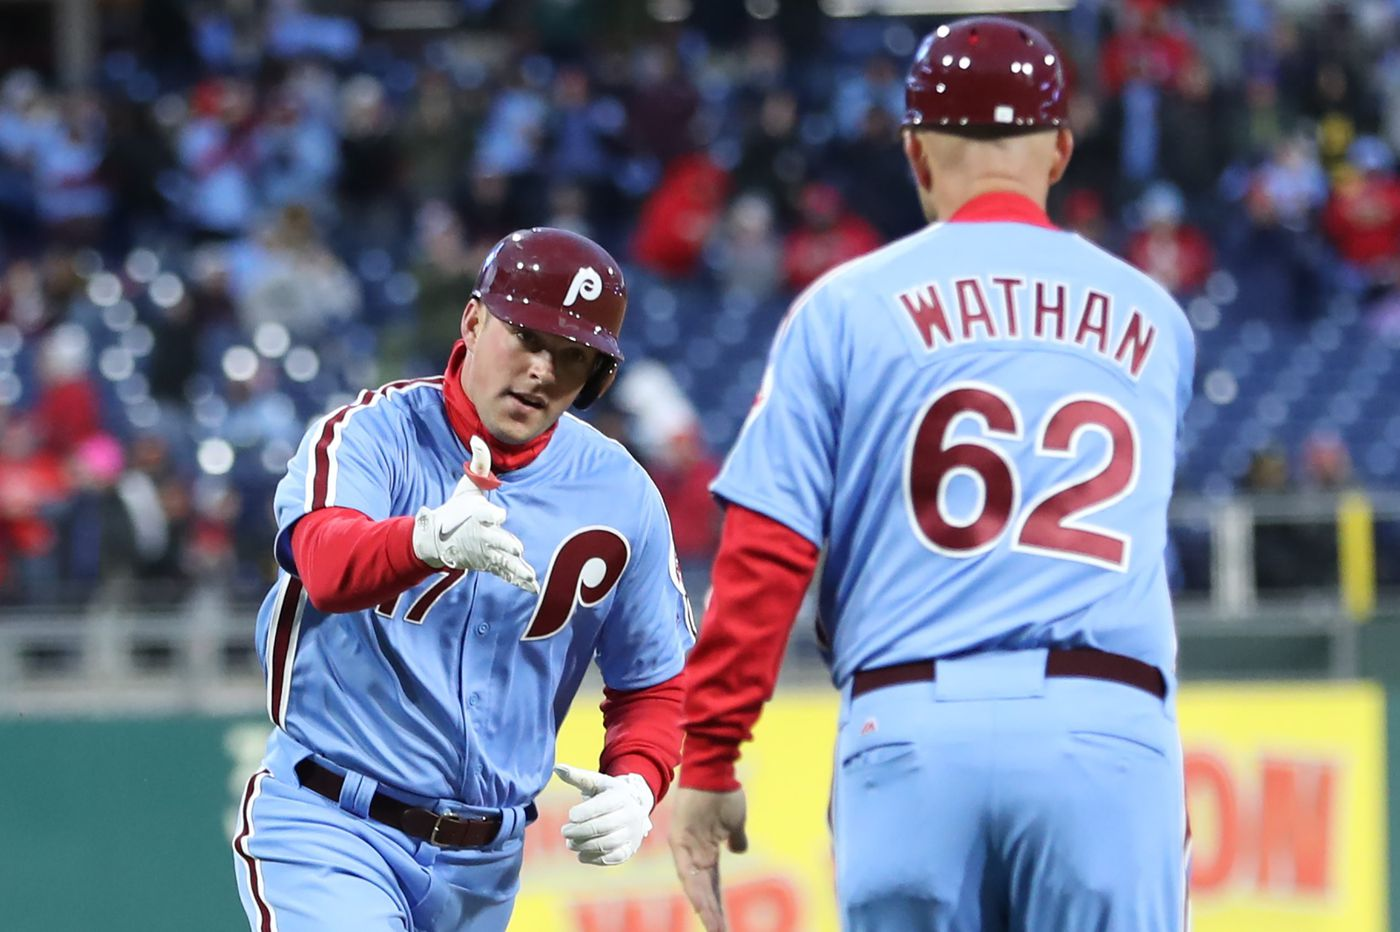 Phillies coach Dusty Wathan will interview for Texas Rangers managerial job